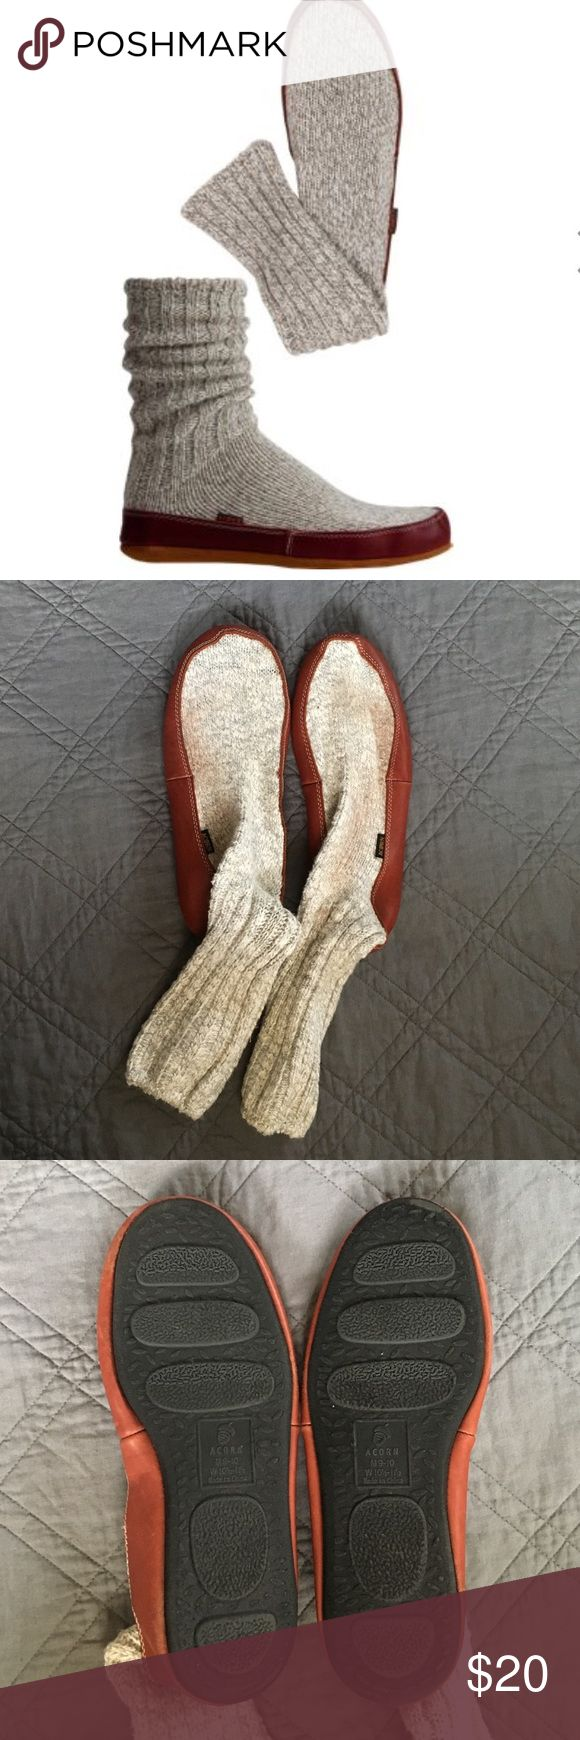 Acorn Ragg Wool Slipper Socks SZ M 9-10 This is a pair of acorn slipper socks, In FAIR pre-owned condition. Some signs of wear and tear & some smudging, pulling & light snagging - ALL superficial -probably could be washed? see pic #4. Traditional ragg wool slipper socks have been worn on NASA space flights and have top-grain leather soles.  Suede Leather Sole, Foam Insole 85% Wool, 13% Nylon, 2% Spandex  Care Handwash in cold water with mild soap, gently squeeze.Avoid harsh rubbing. Dry at…